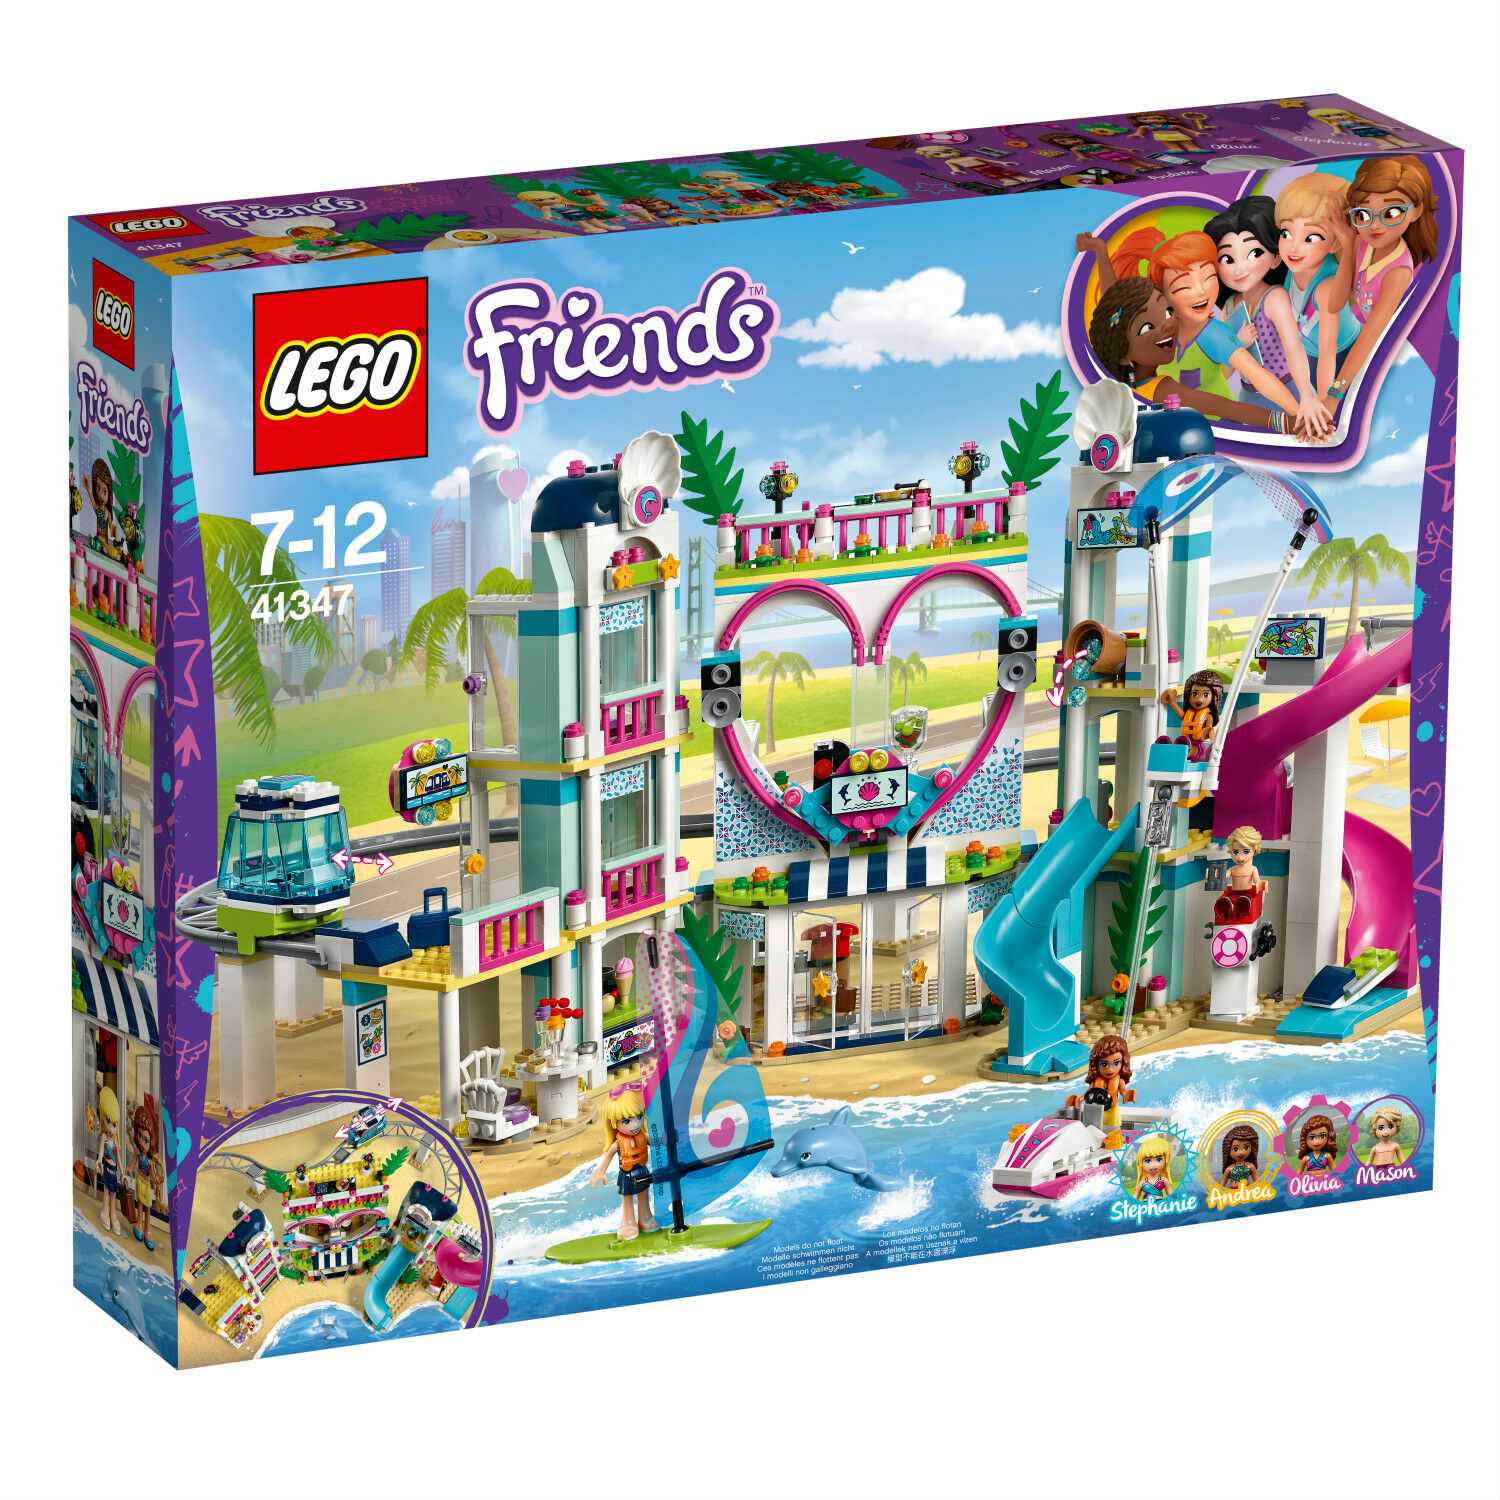 LEGO Friends 41347 Heartlake City Resort Le complexe complexe complexe touristique NEU N7 18 898790